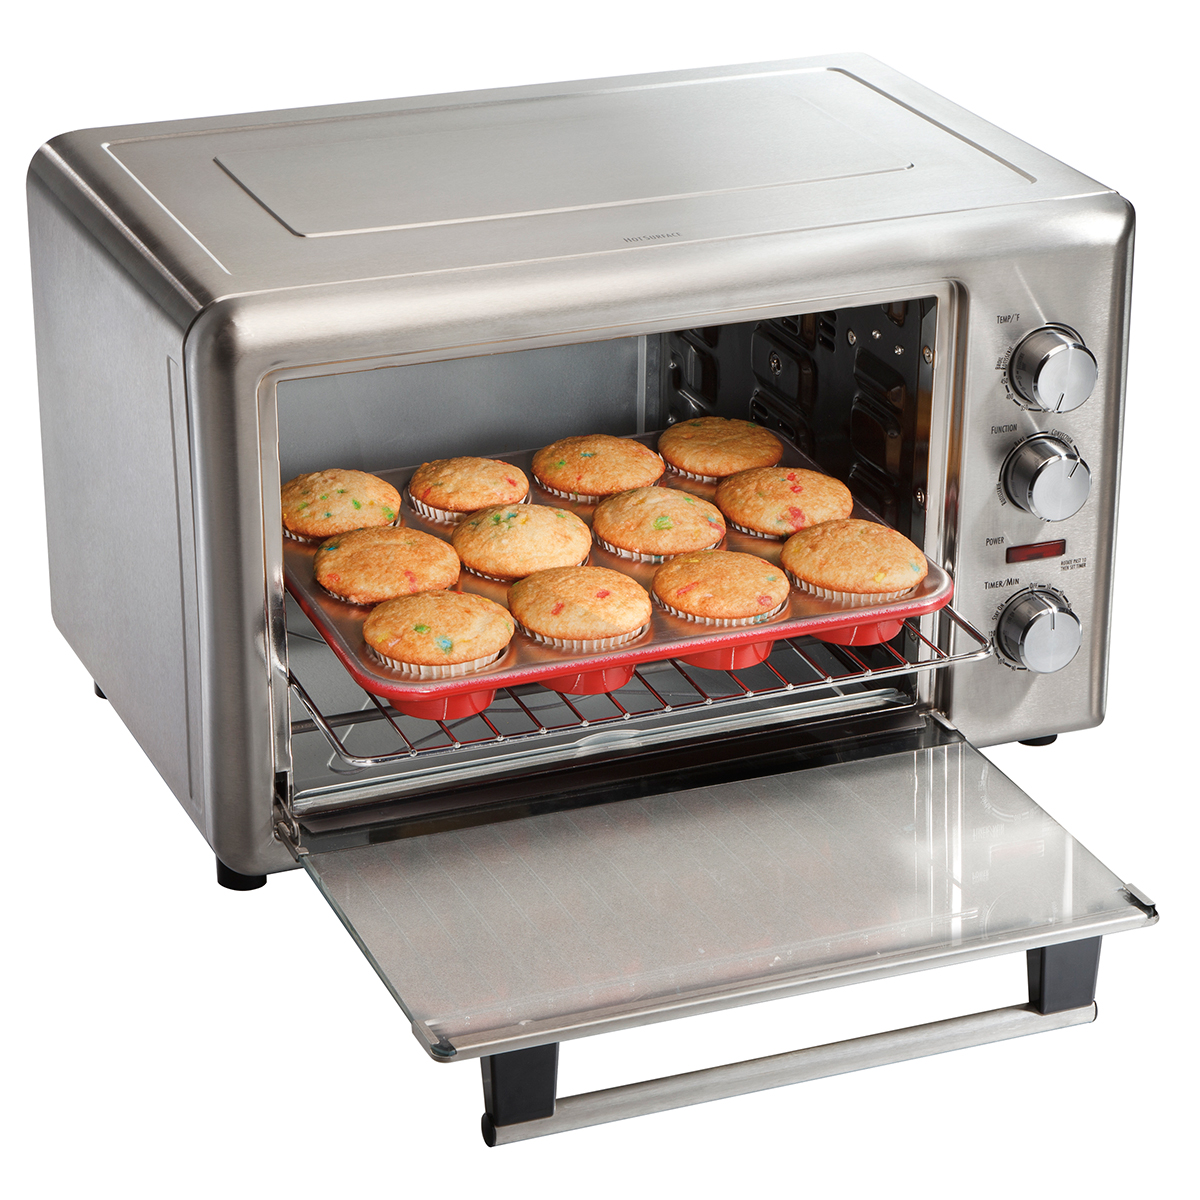 Best Countertop Ovens For Baking Countertop Oven 31103 Stainless Hamiltonbeach